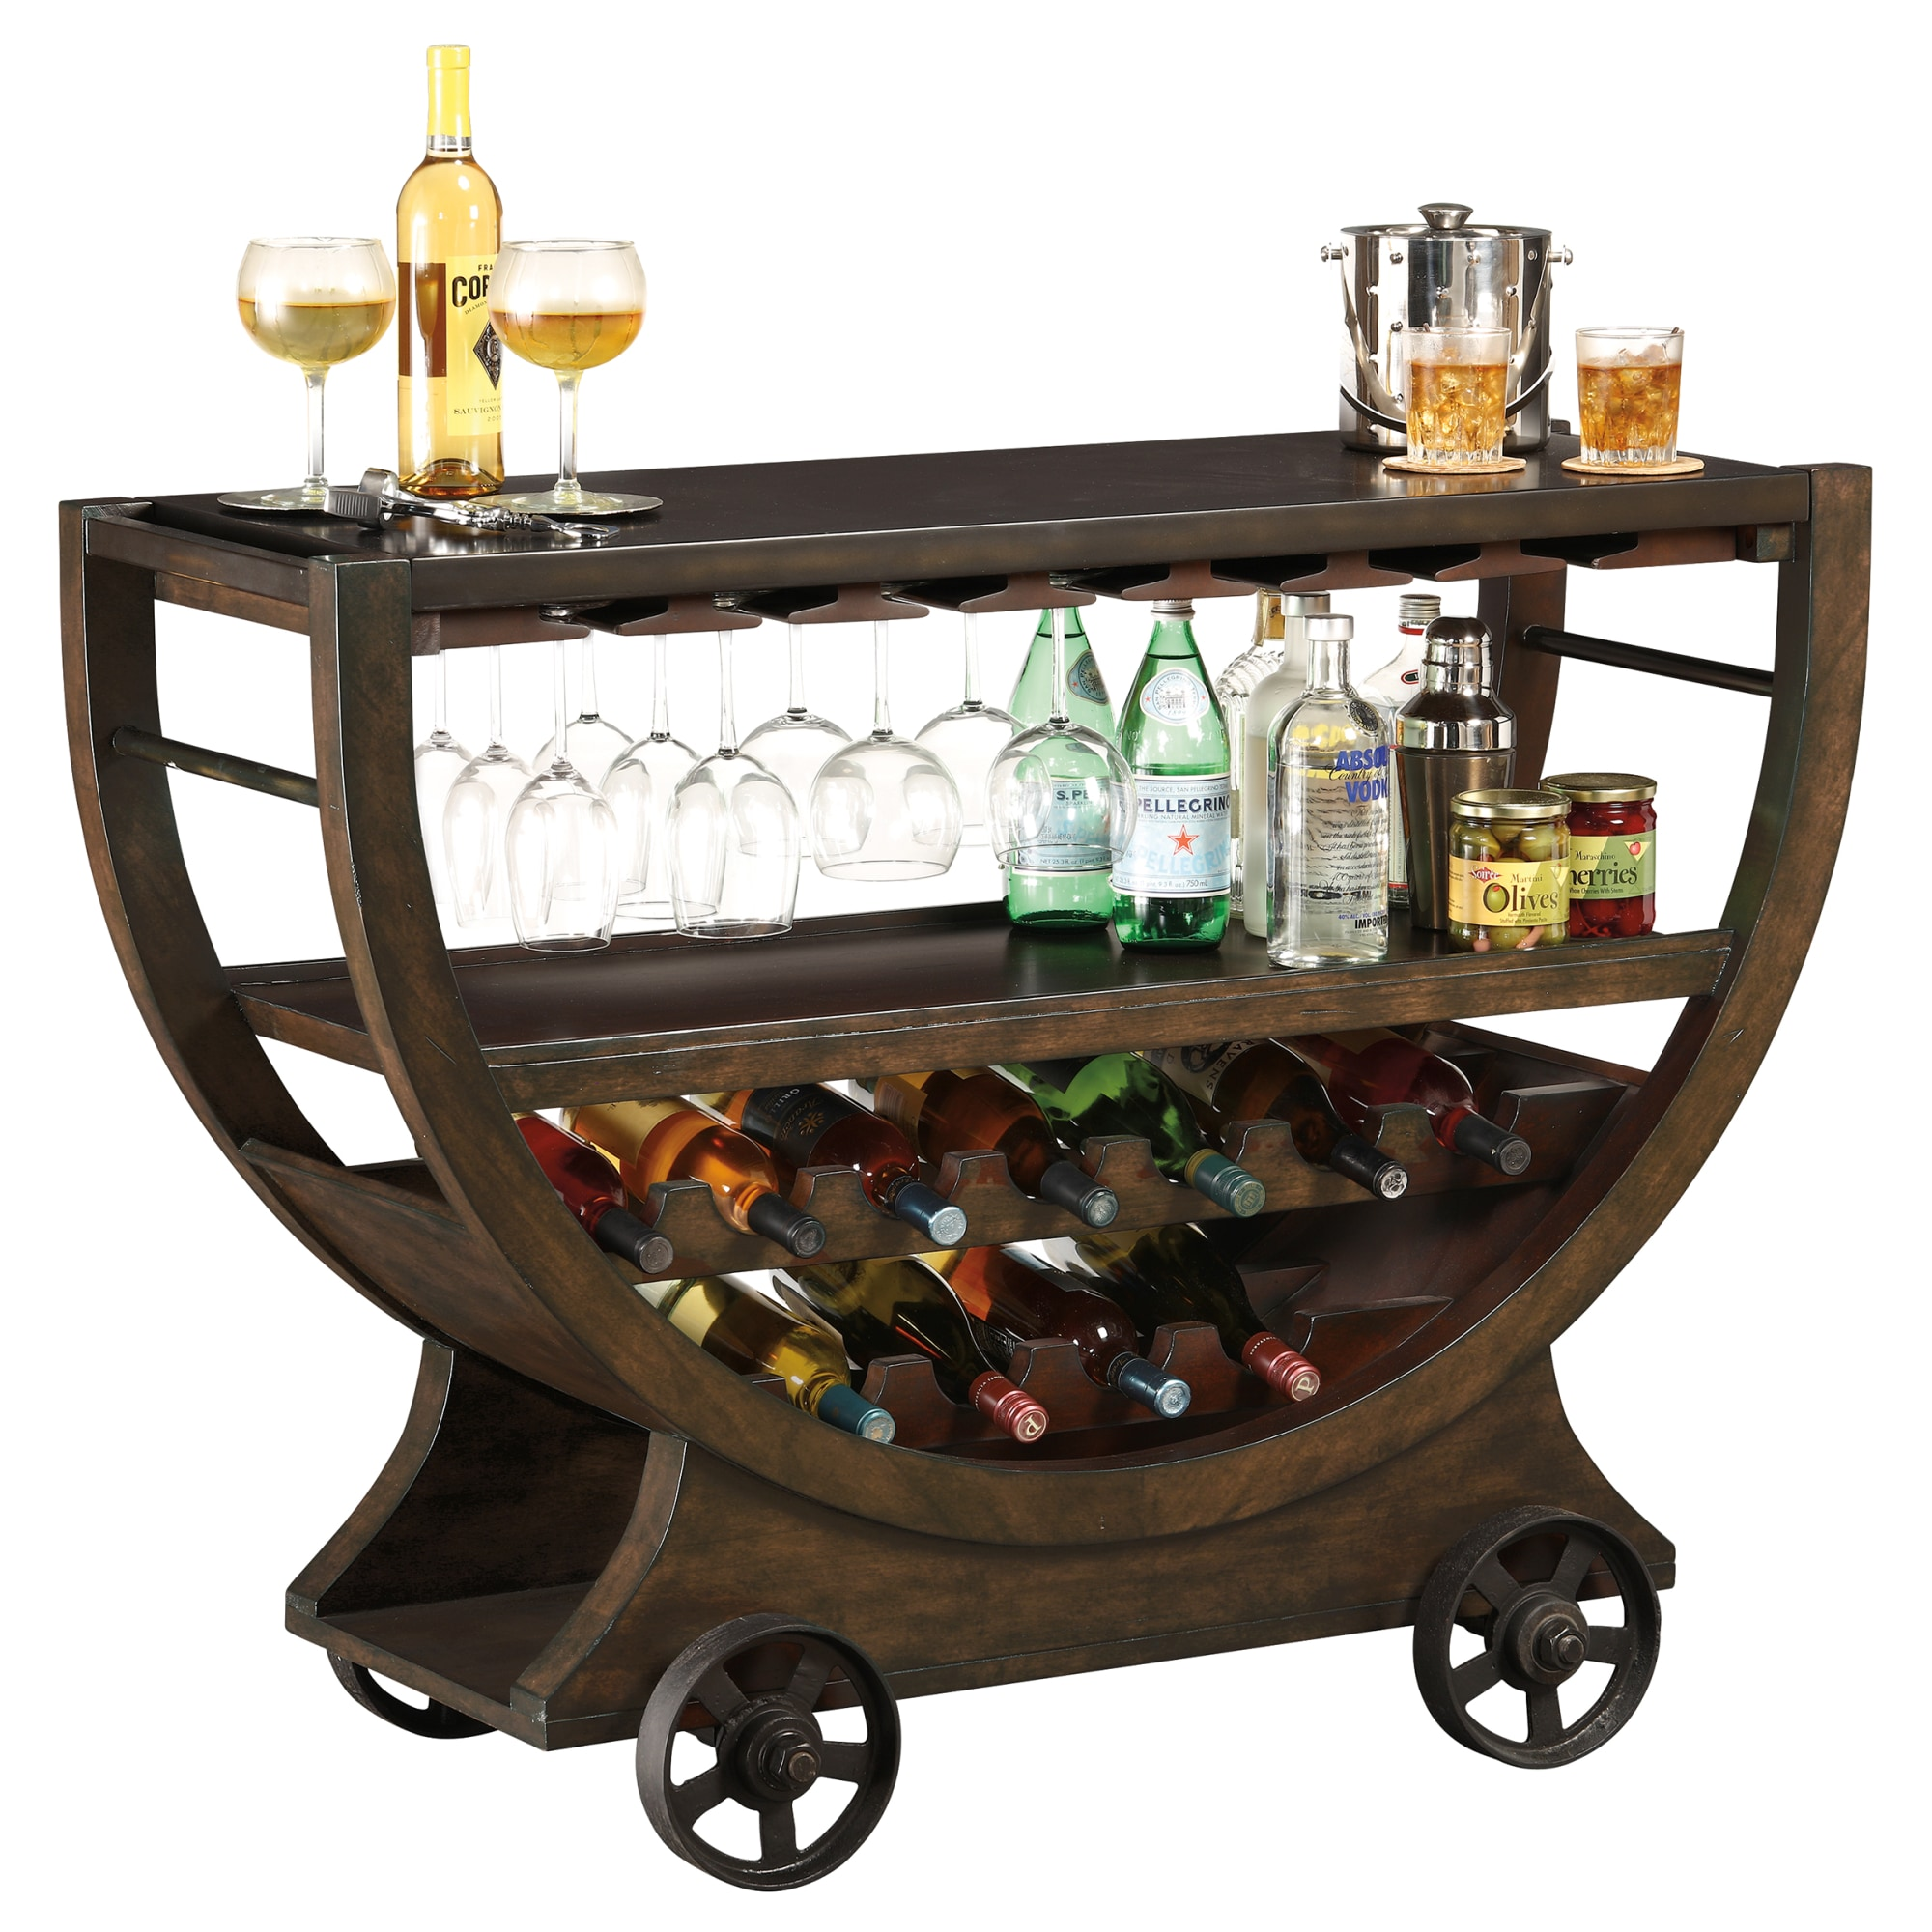 Image for 695-184 Happy Hour Wine & Bar Console from Howard Miller Official Website